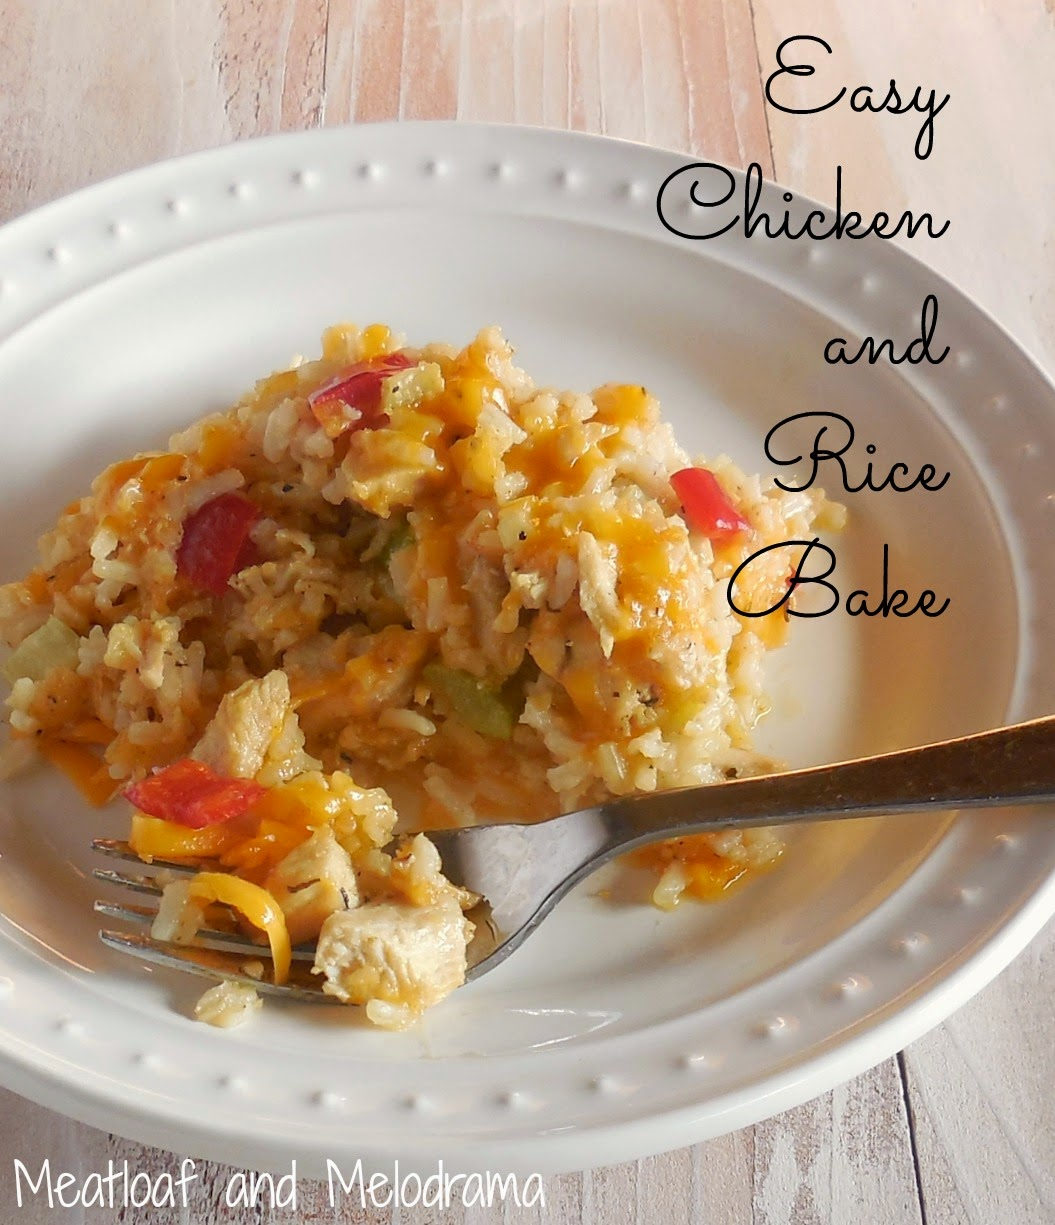 chicken and rice casserole with peppers and cheese on a plate